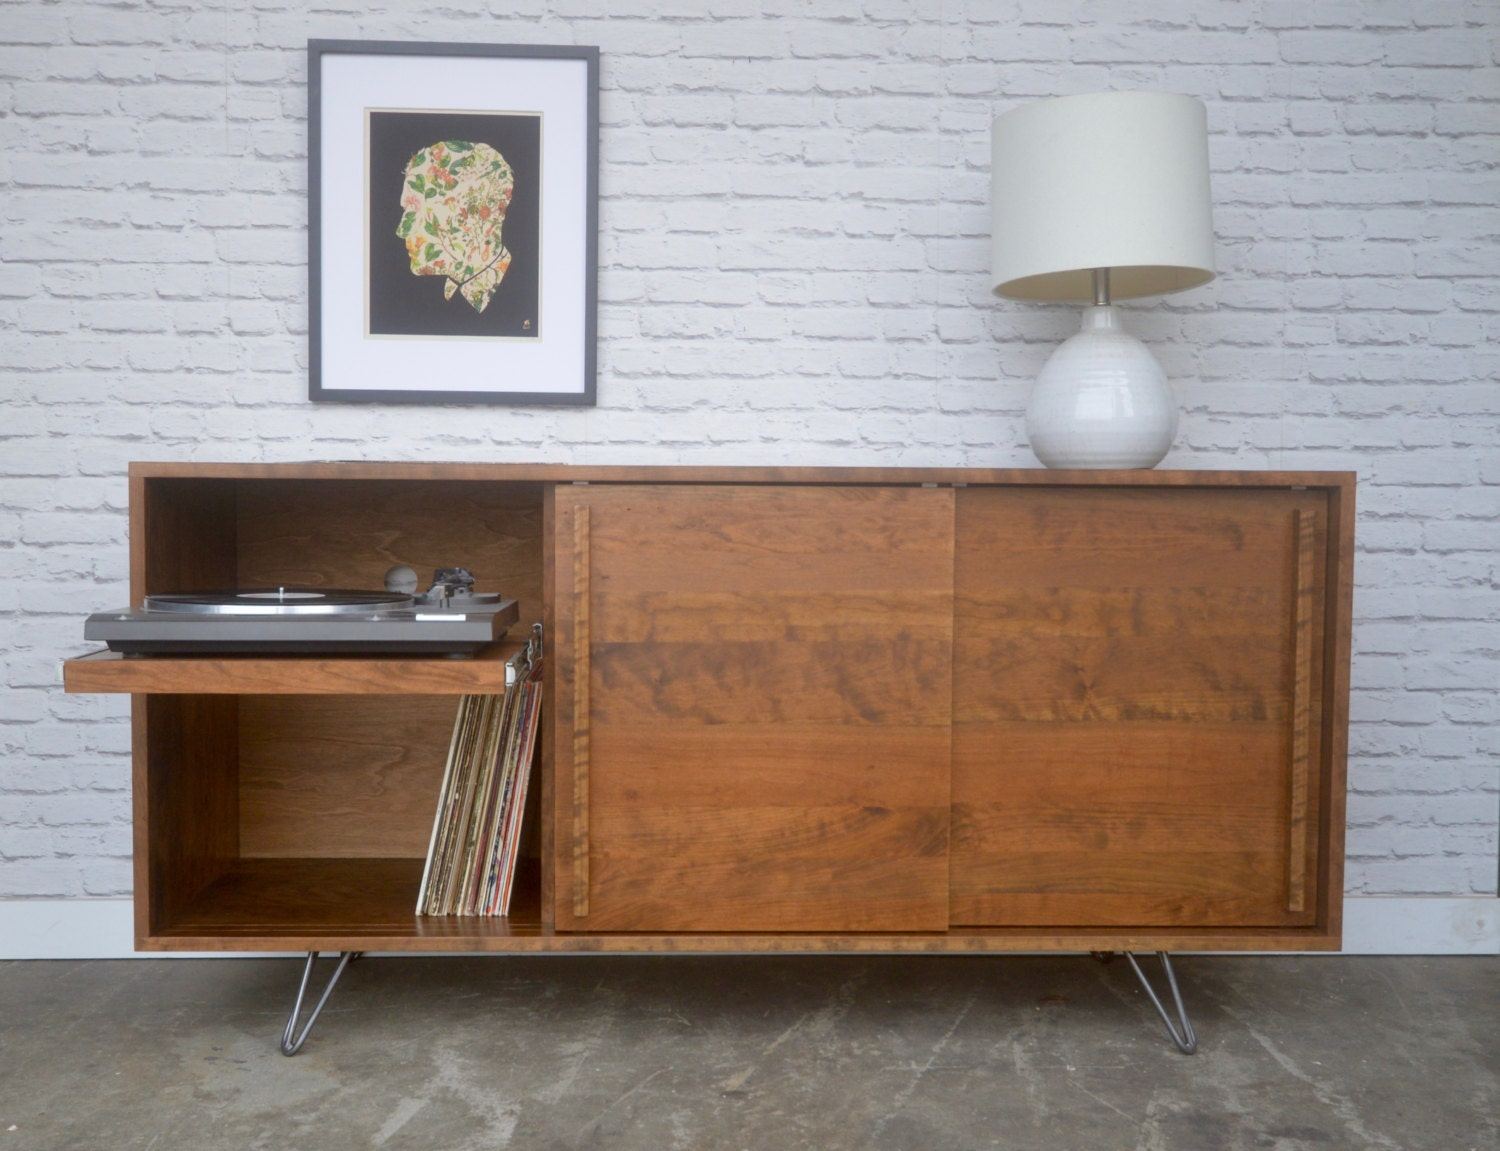 Newbery Cabinet With Record Player Pull Out Shelf Solid